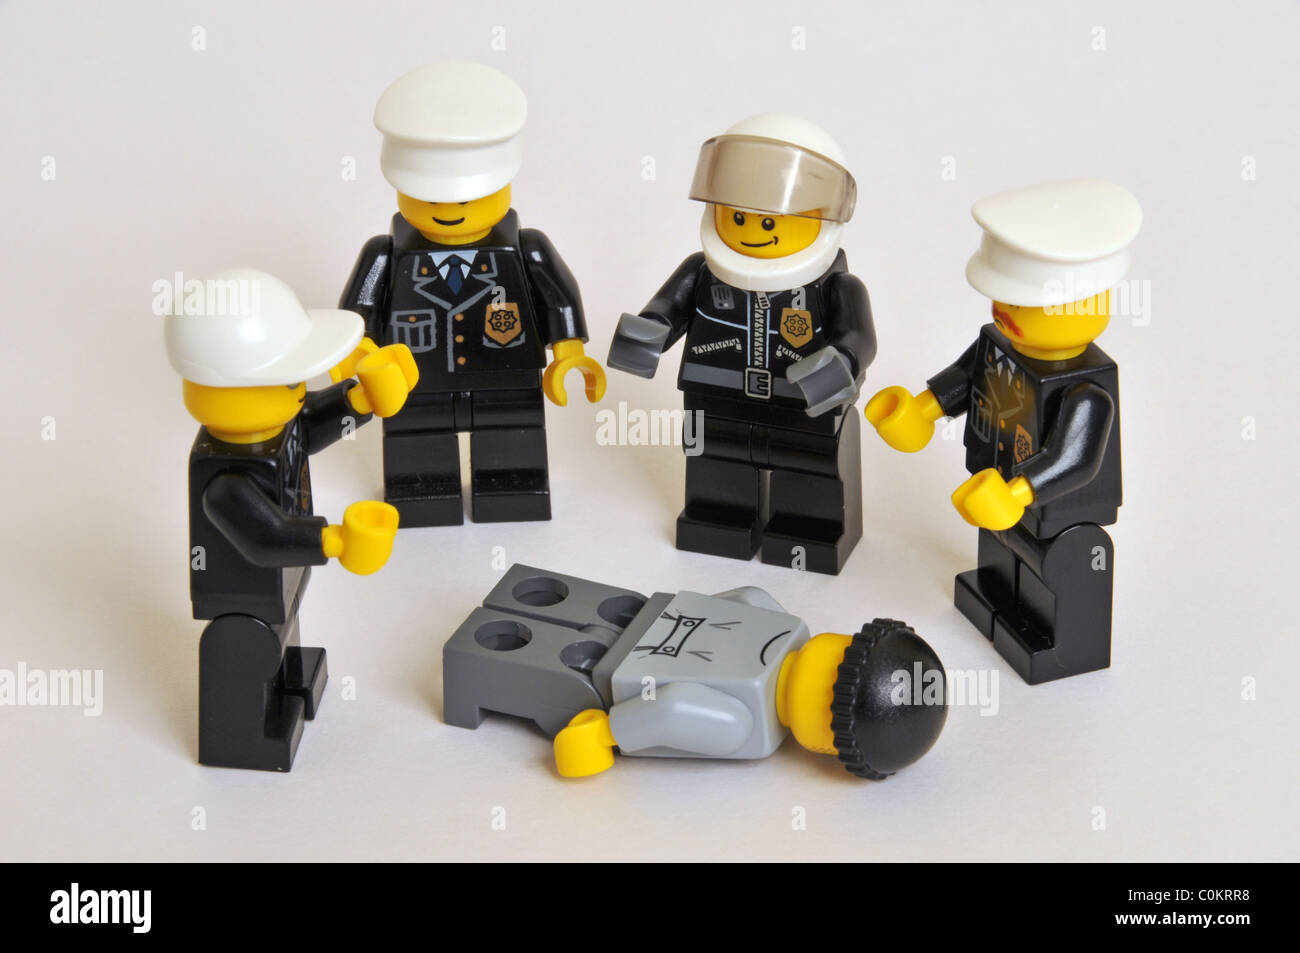 Cops Robbers Police brutality criminal Lego - Stock Image